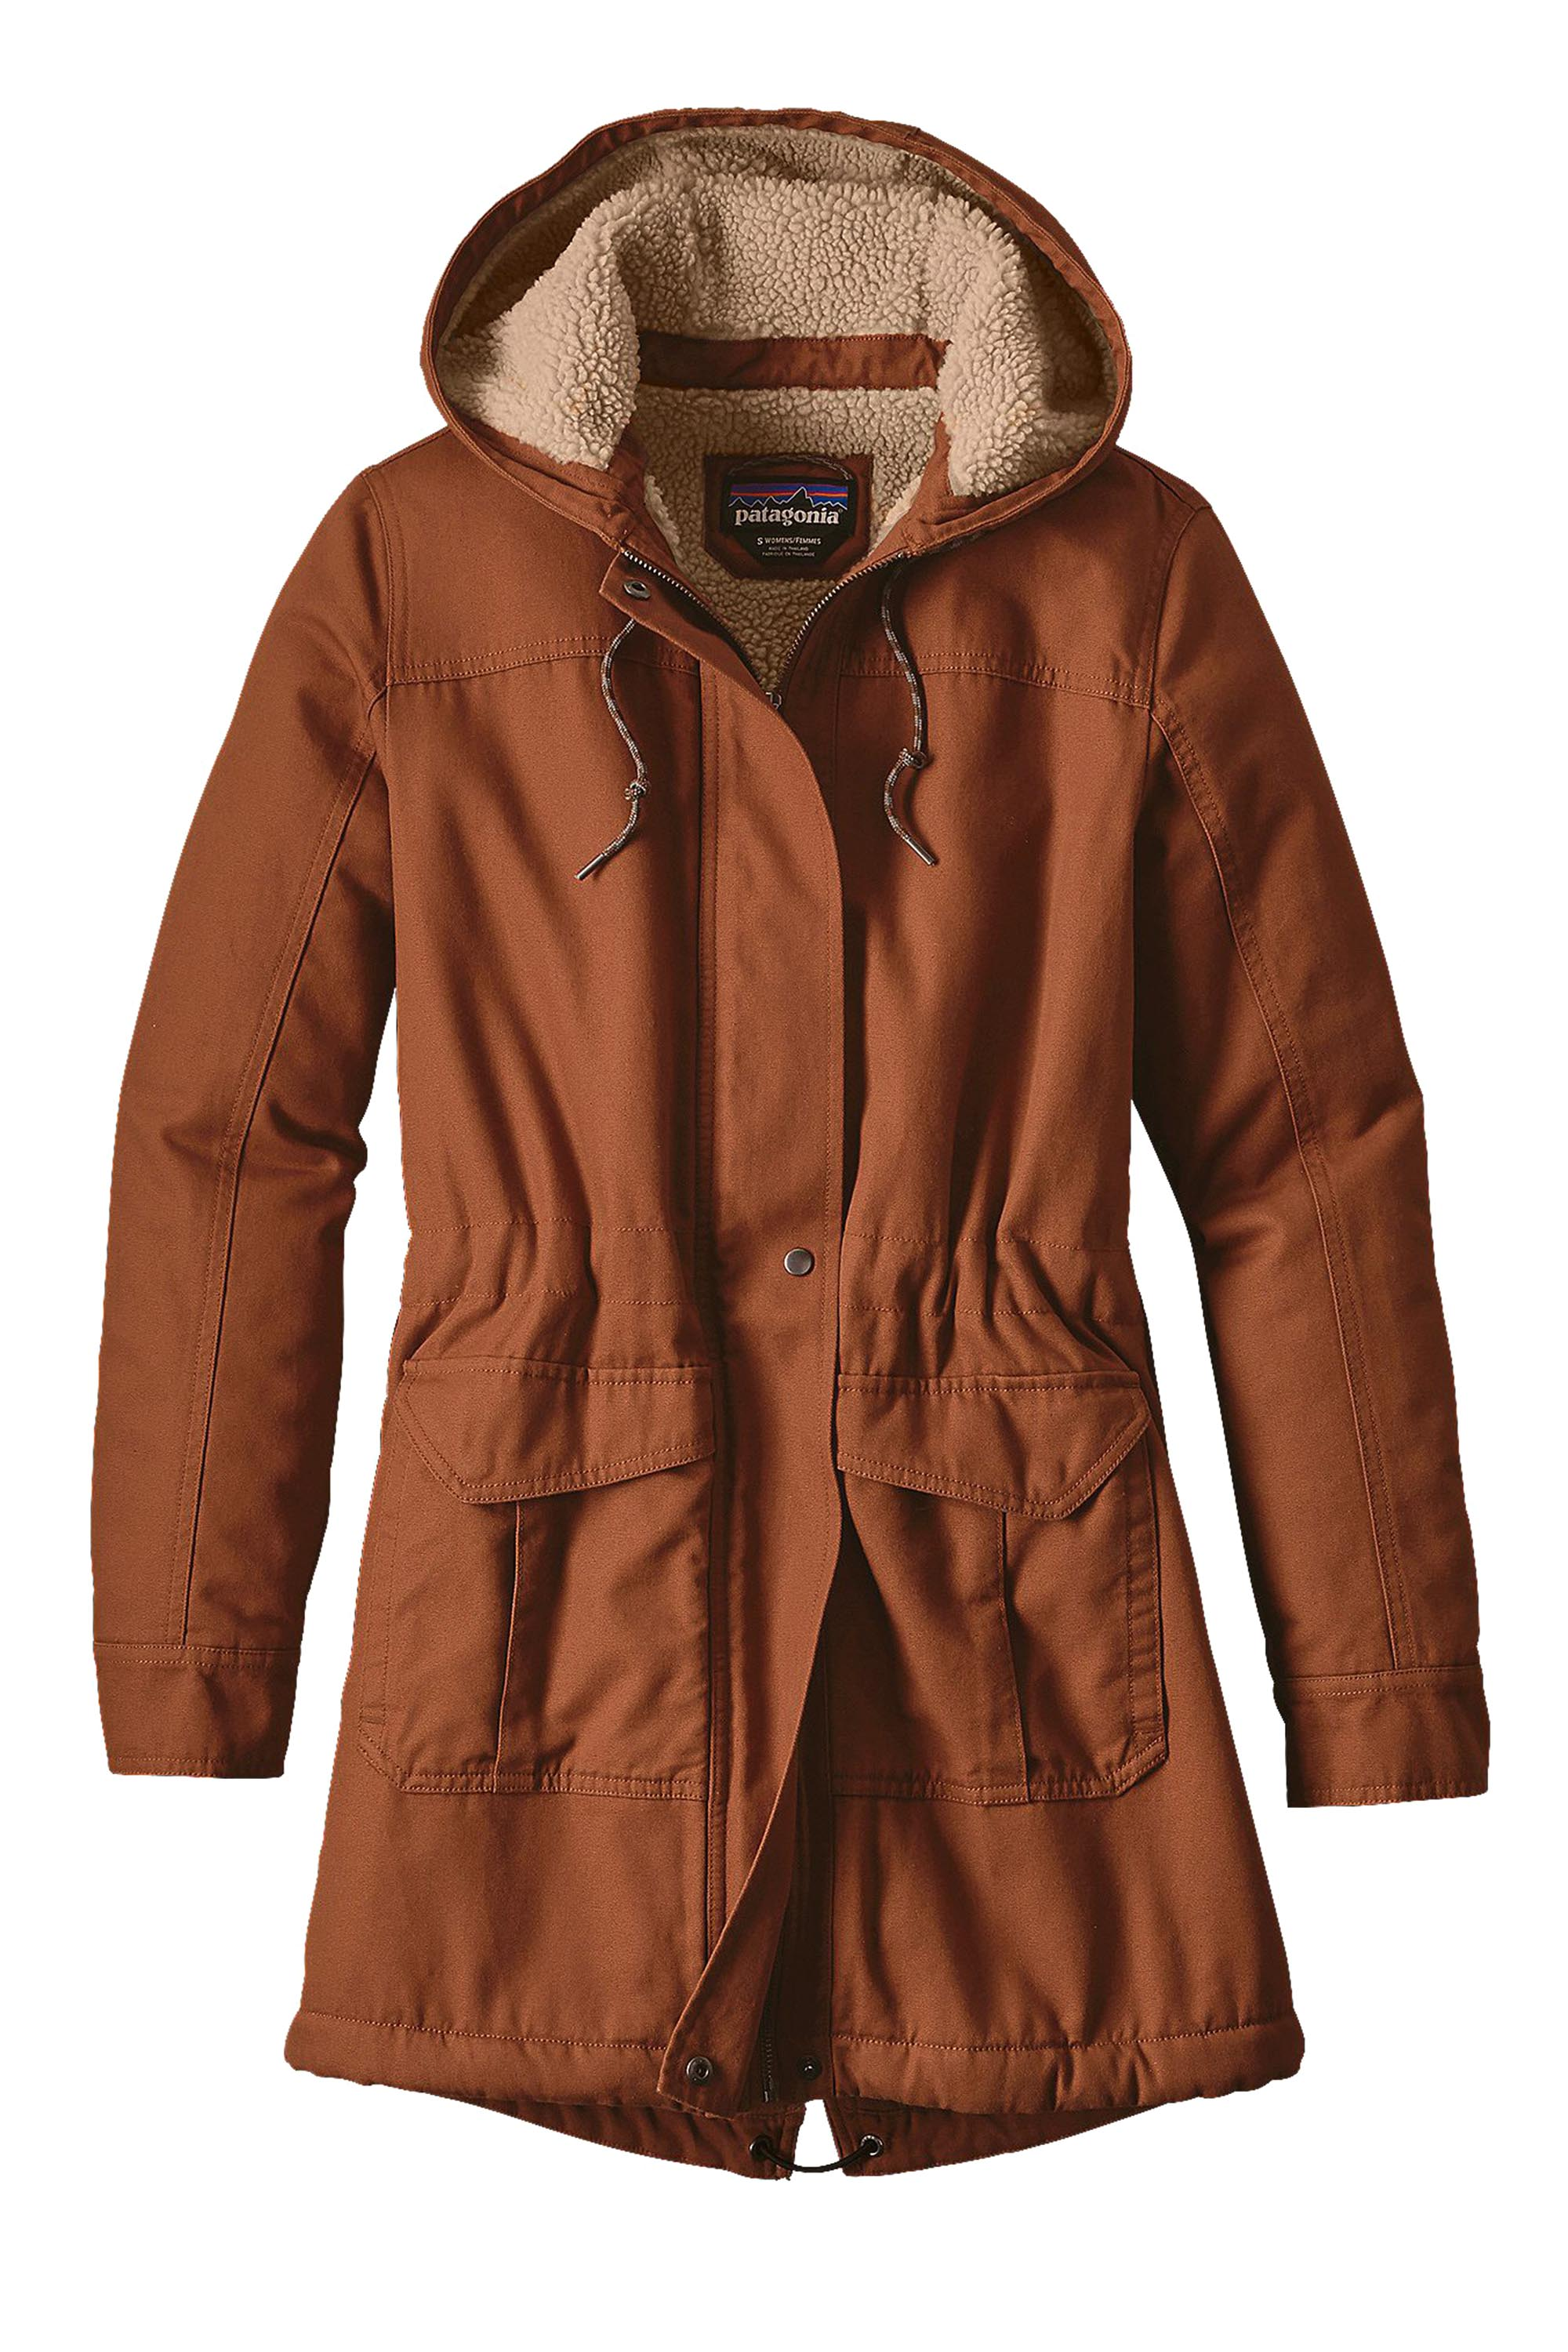 Cool Parka Jackets Jacket To